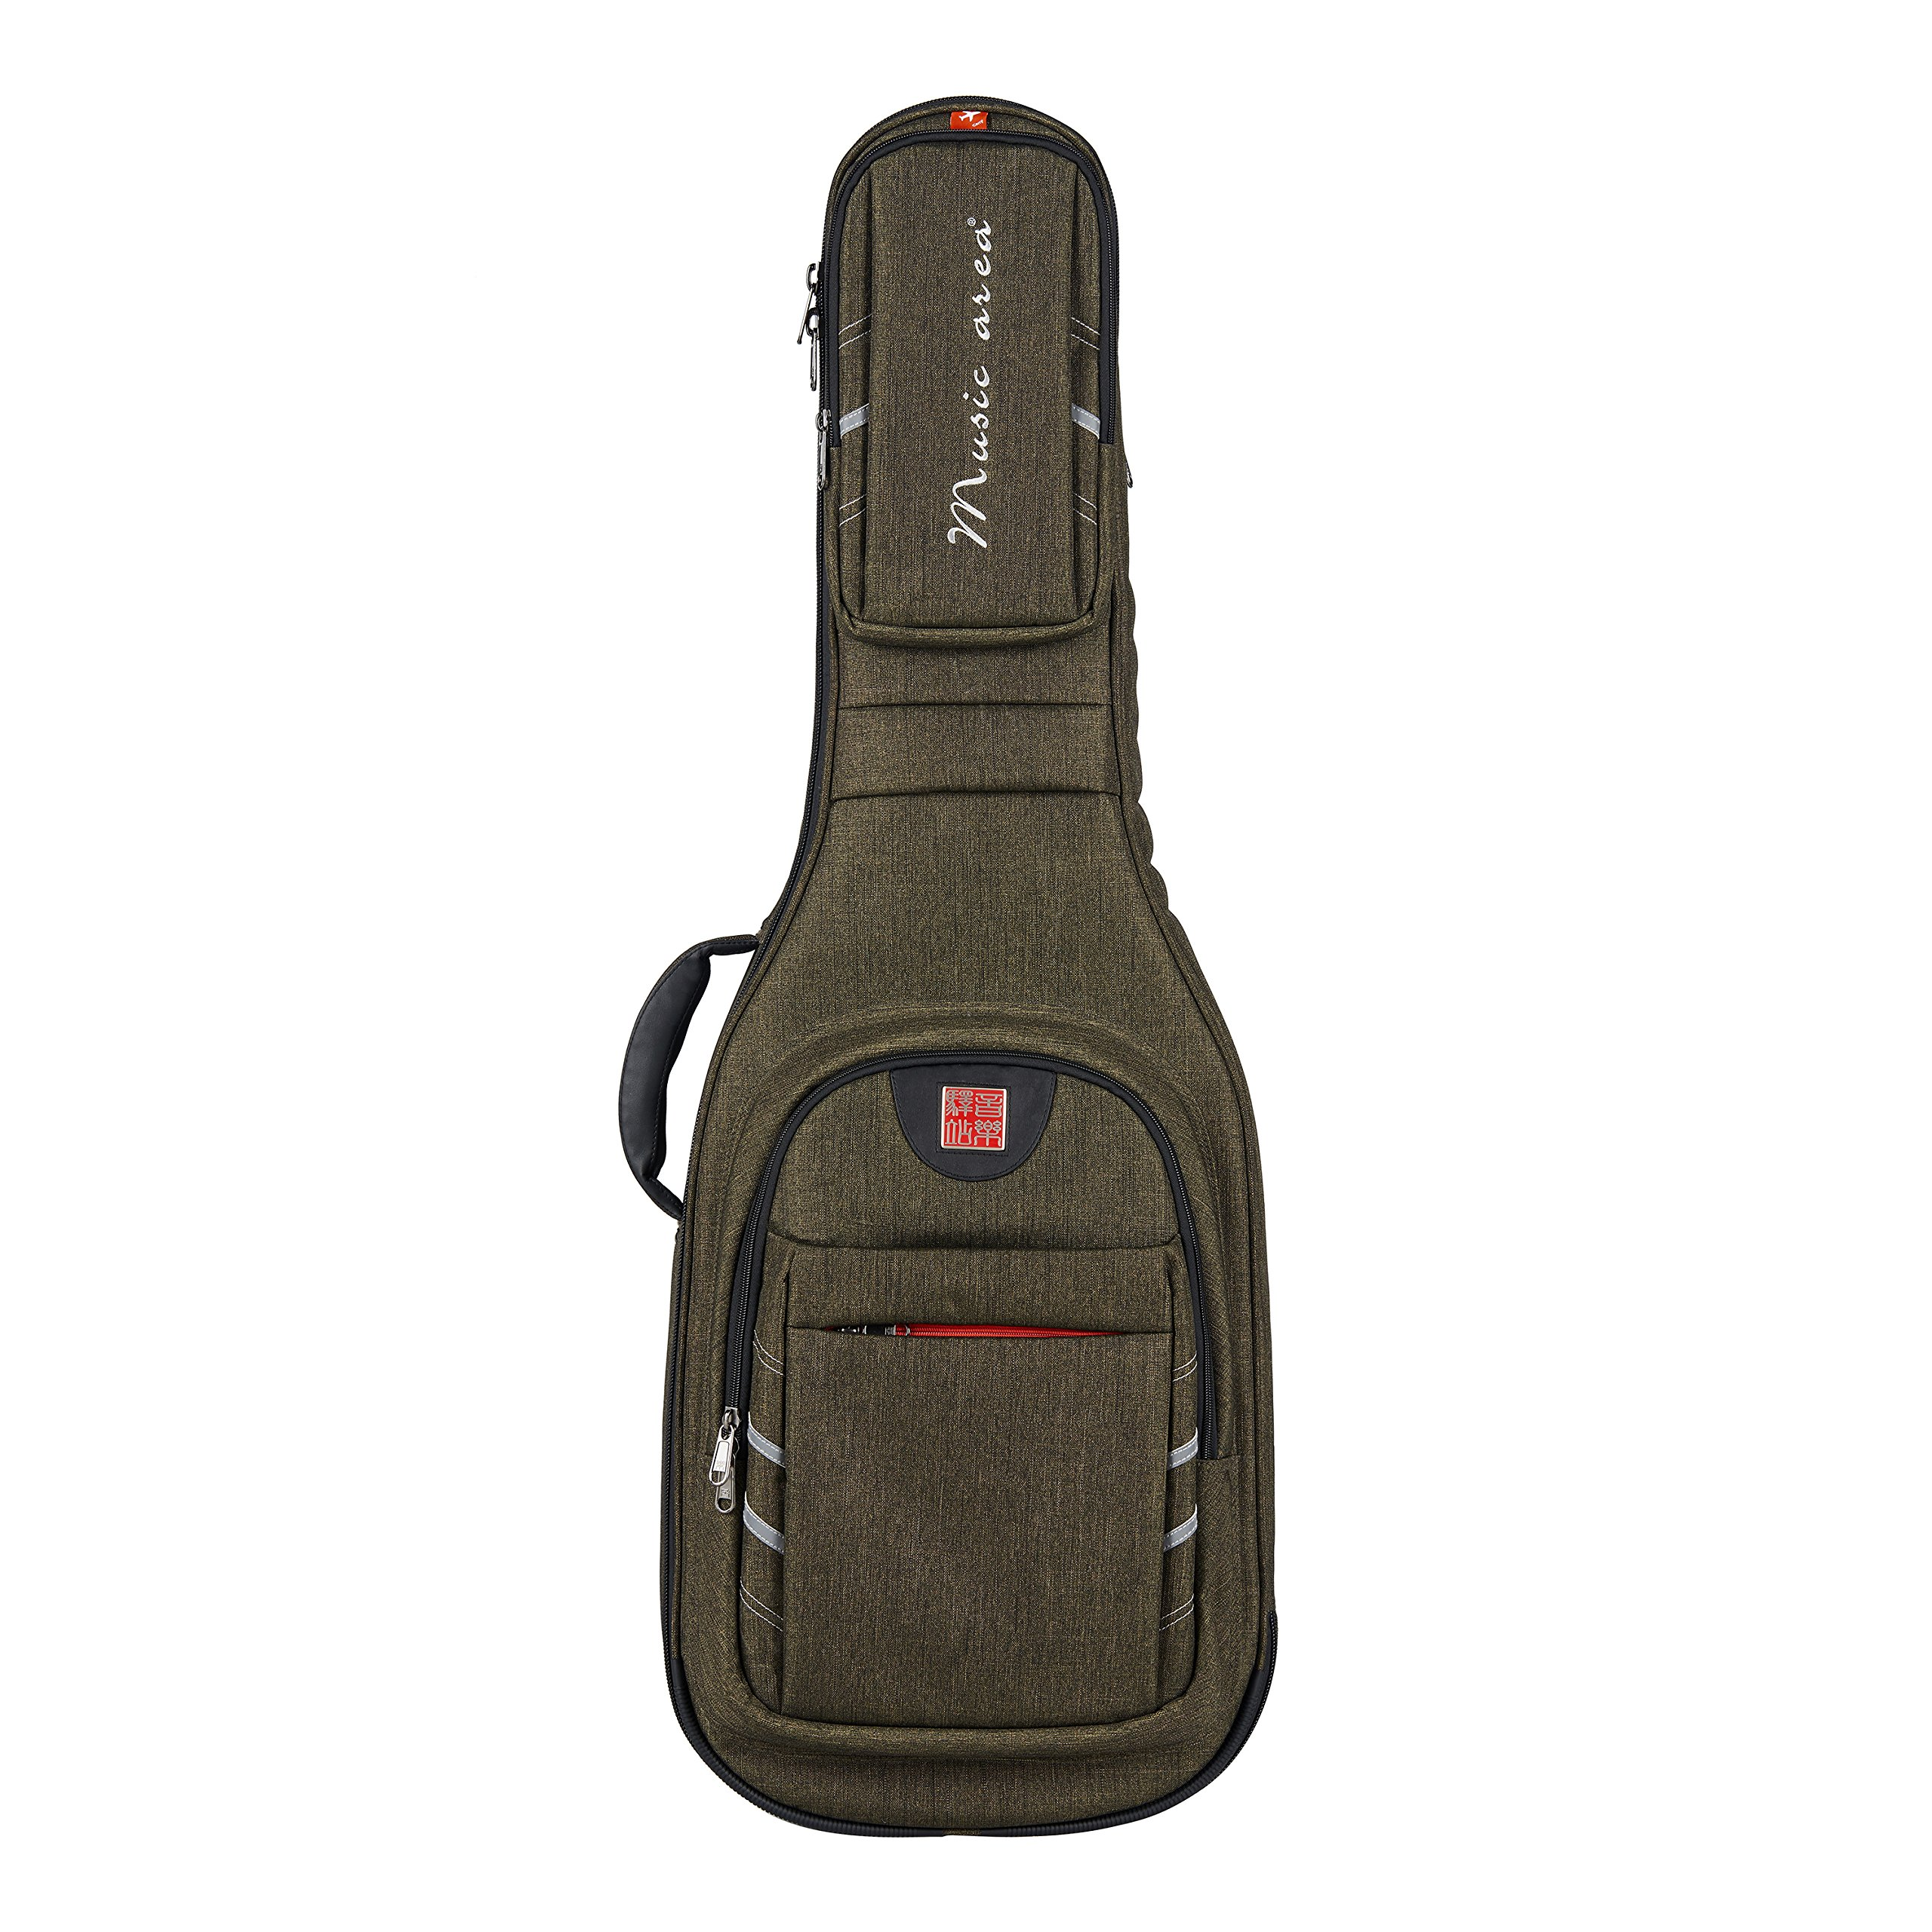 Music Area WIND 30 Series Electric Guitar Bag - Green (WIND30-EG-GRN) by Music Area